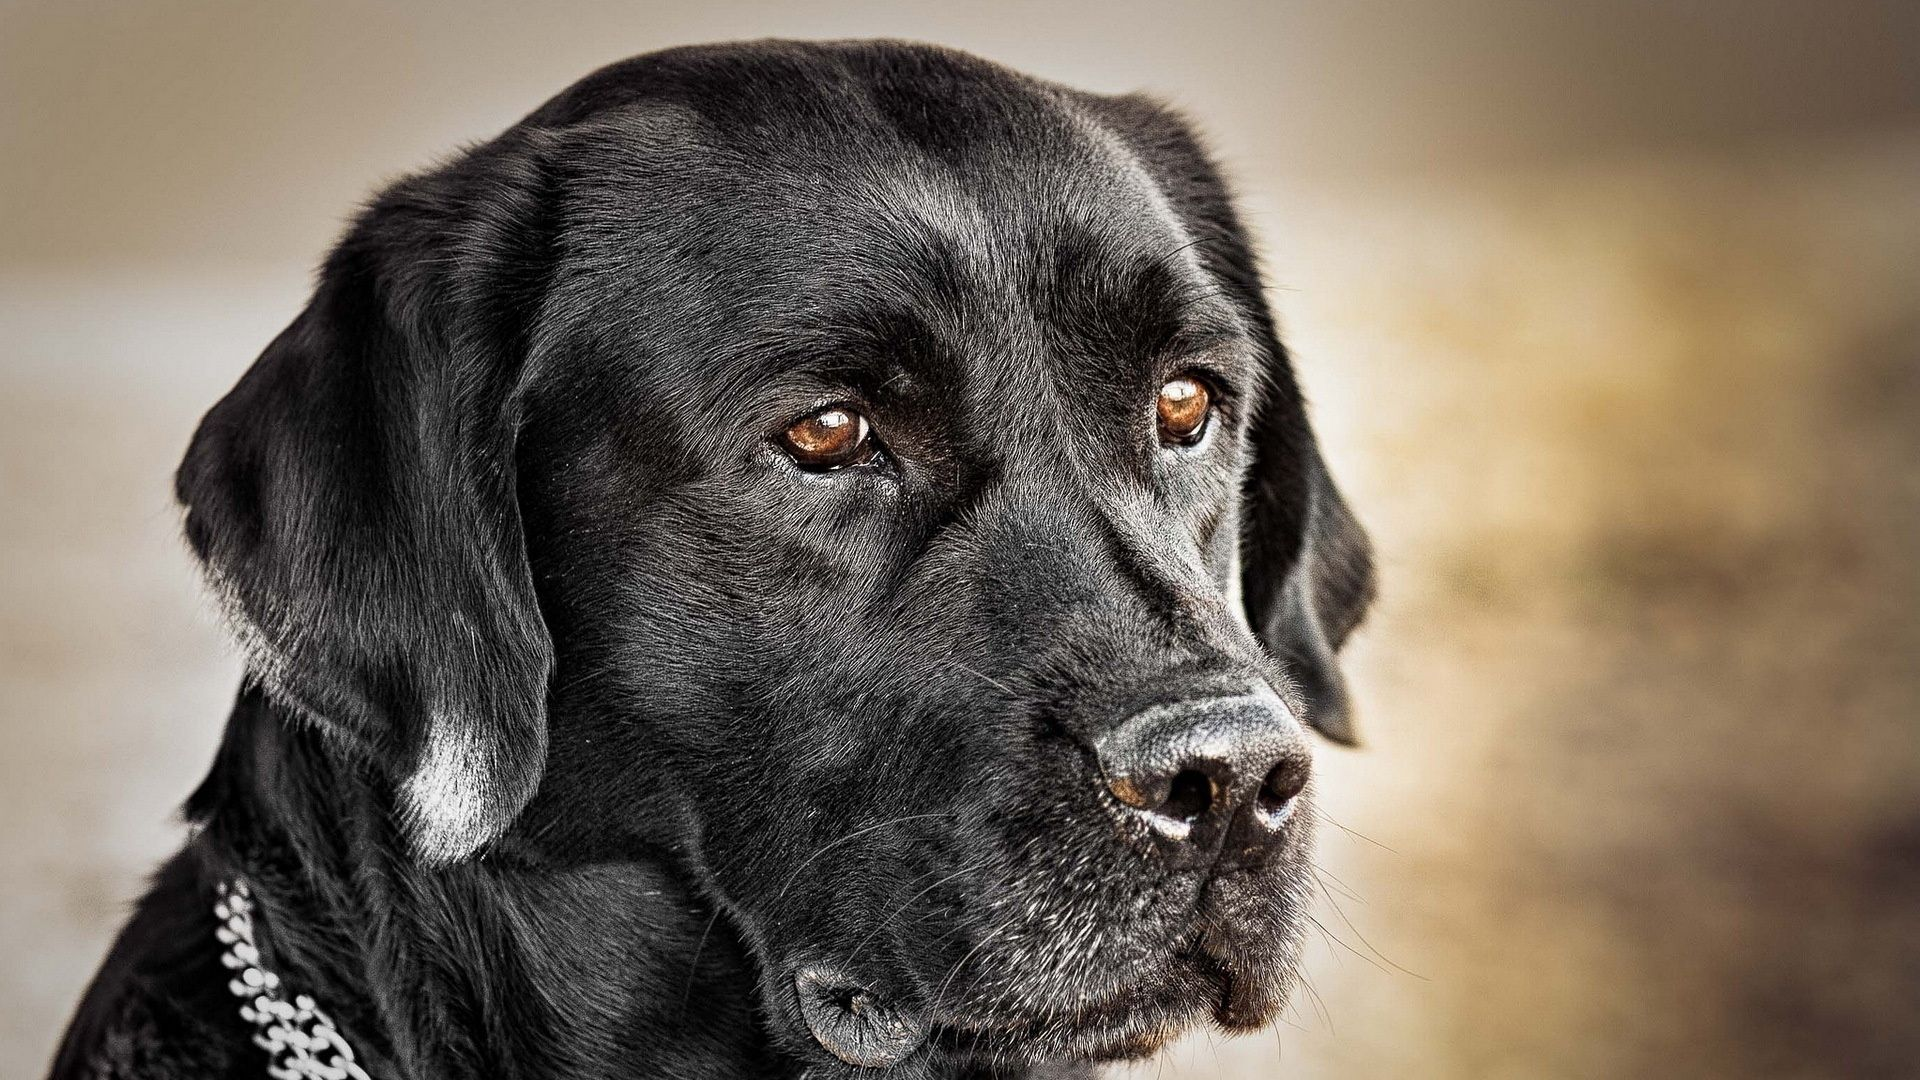 black dog hd wallpapers - free download latest black dog hd